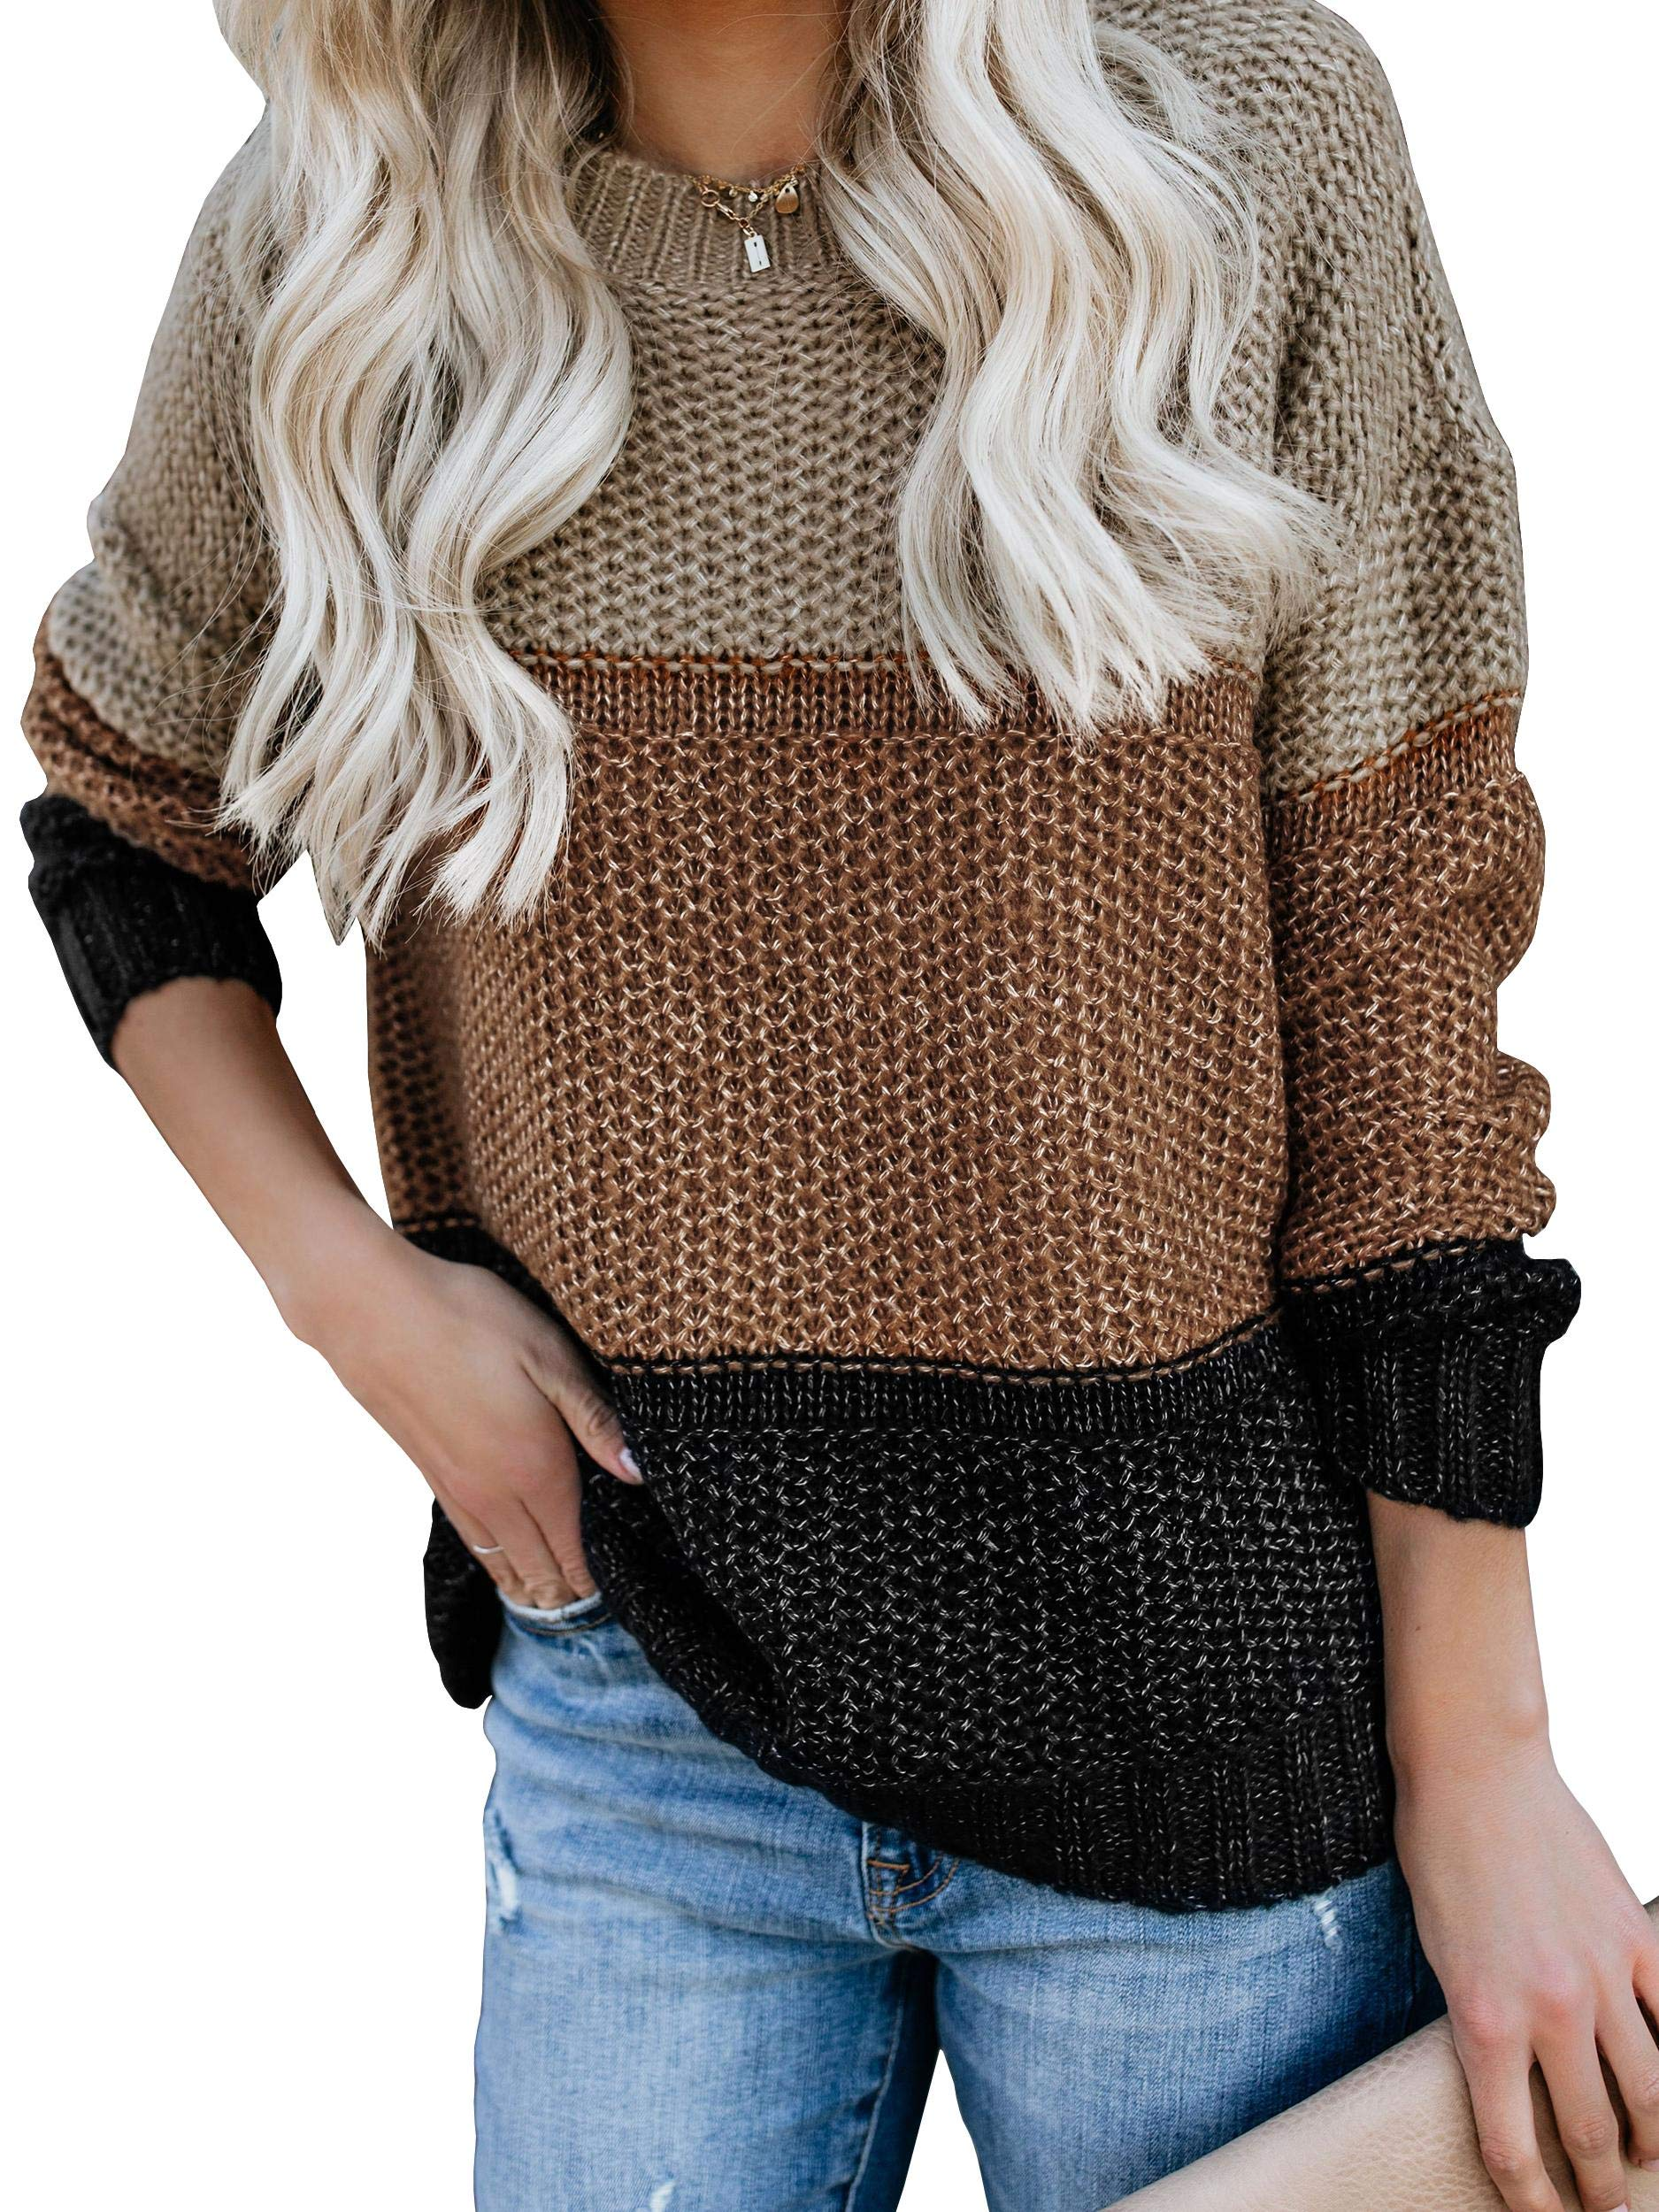 Womens Slim Striped Long Sleeve Oversized Knitted Tops chunky sweater jumper